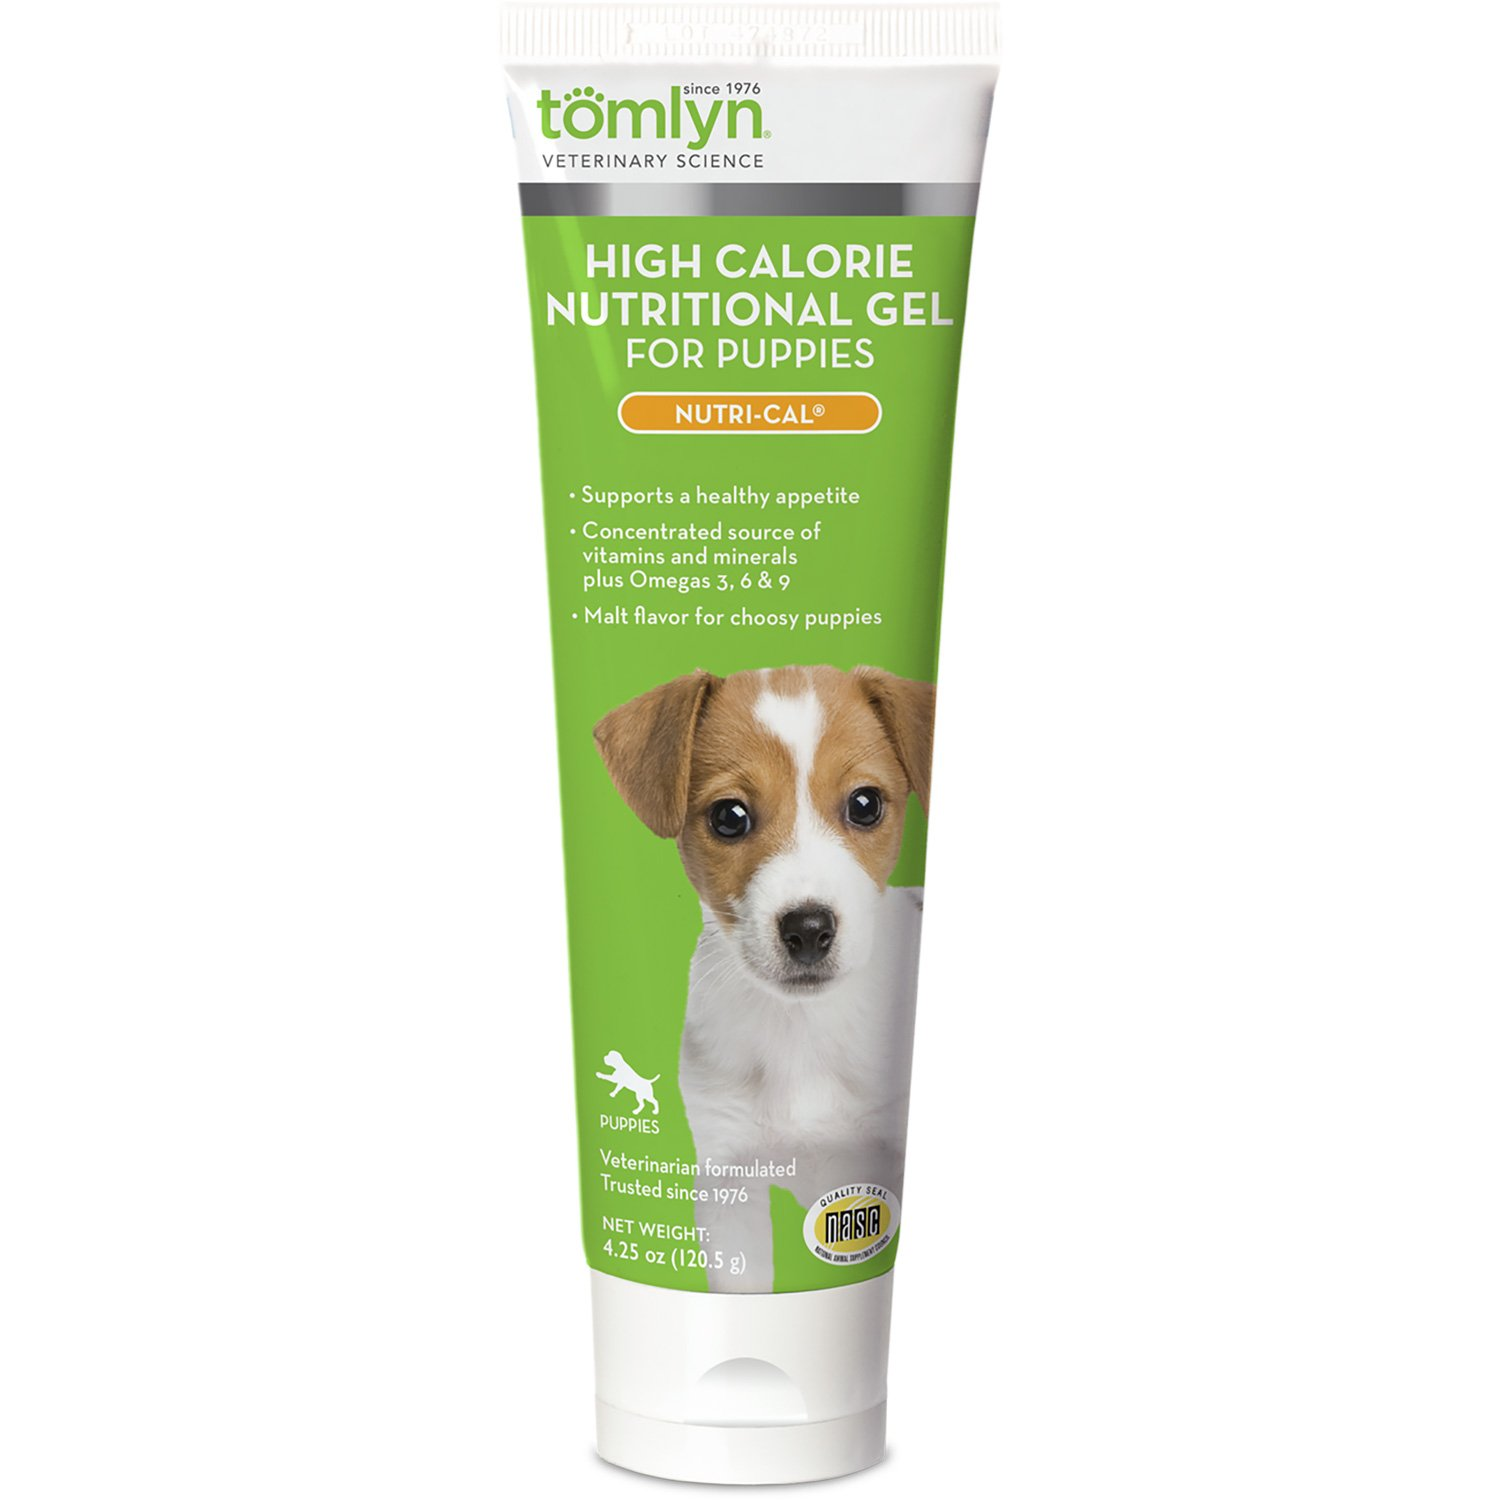 Tomlyn Nutri-Cal Puppy Dietary Supplement | Petco